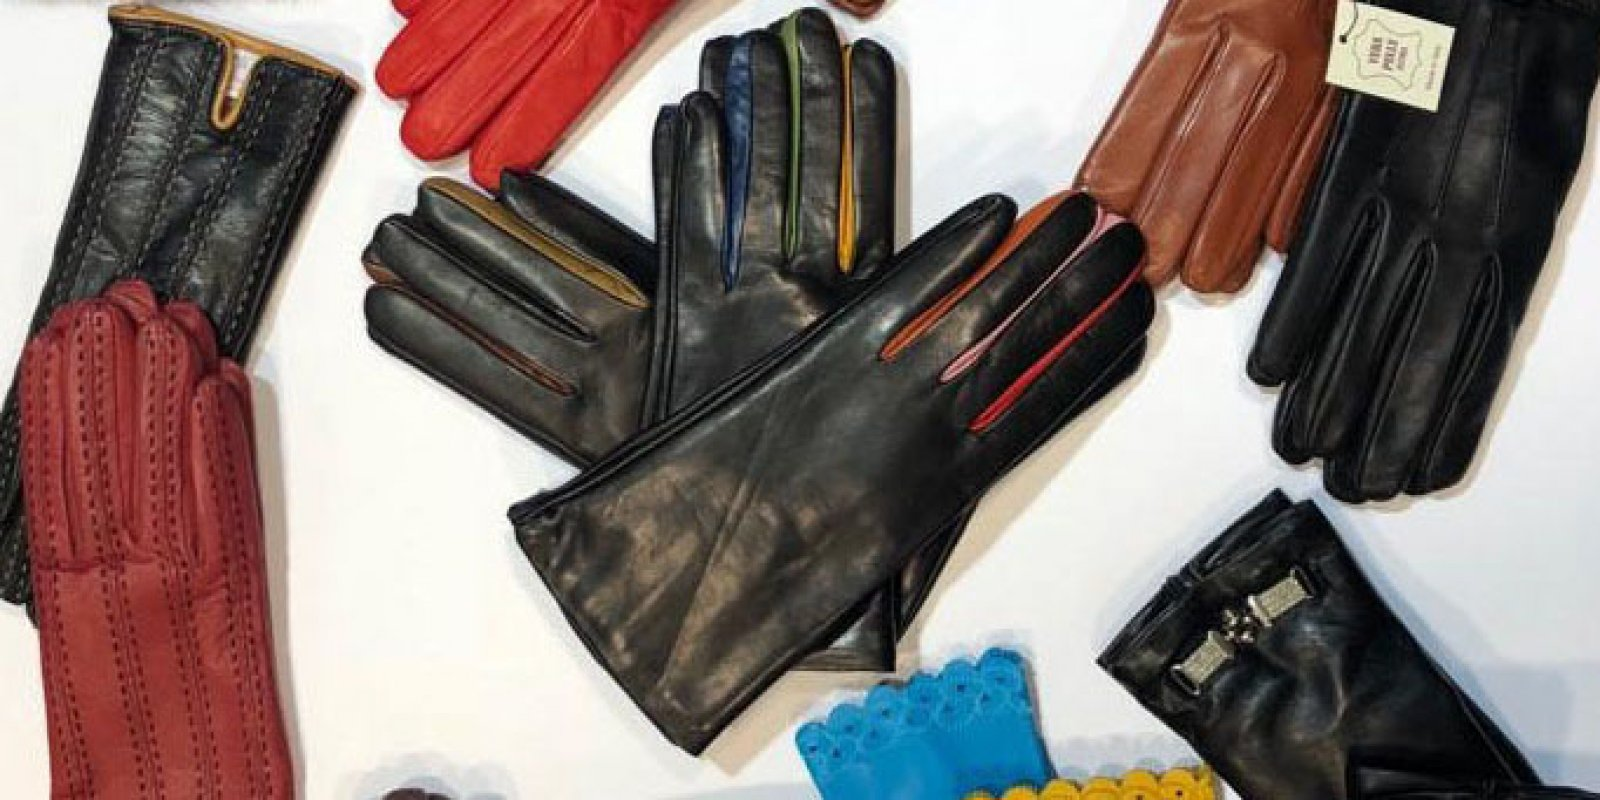 Di Cori Leather and Gloves